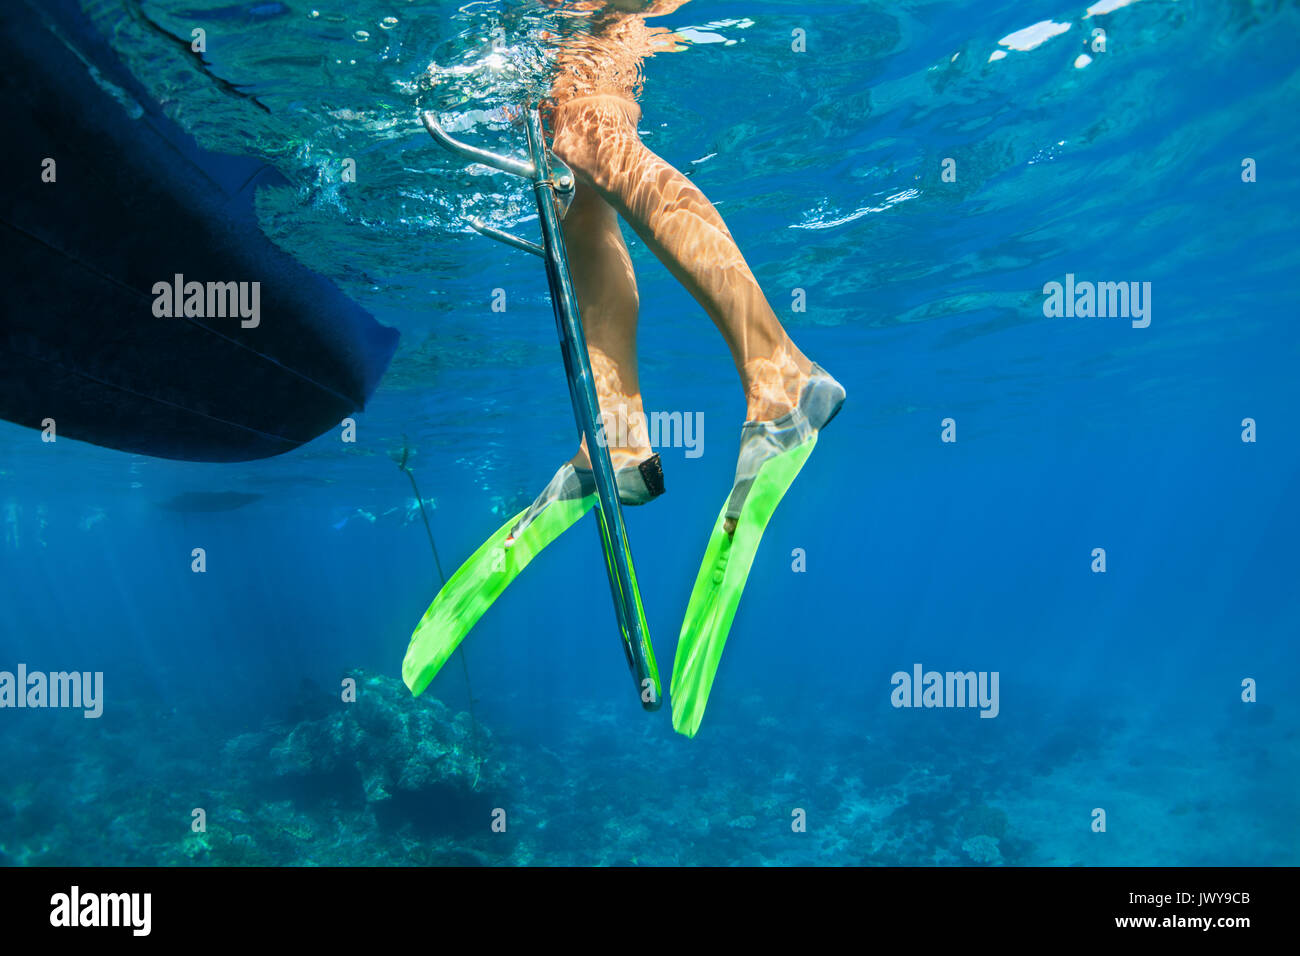 Child in snorkelling fins stand on divers boat ladder for diving underwater in tropical coral reef sea pool. Travel lifestyle, water sport adventure - Stock Image